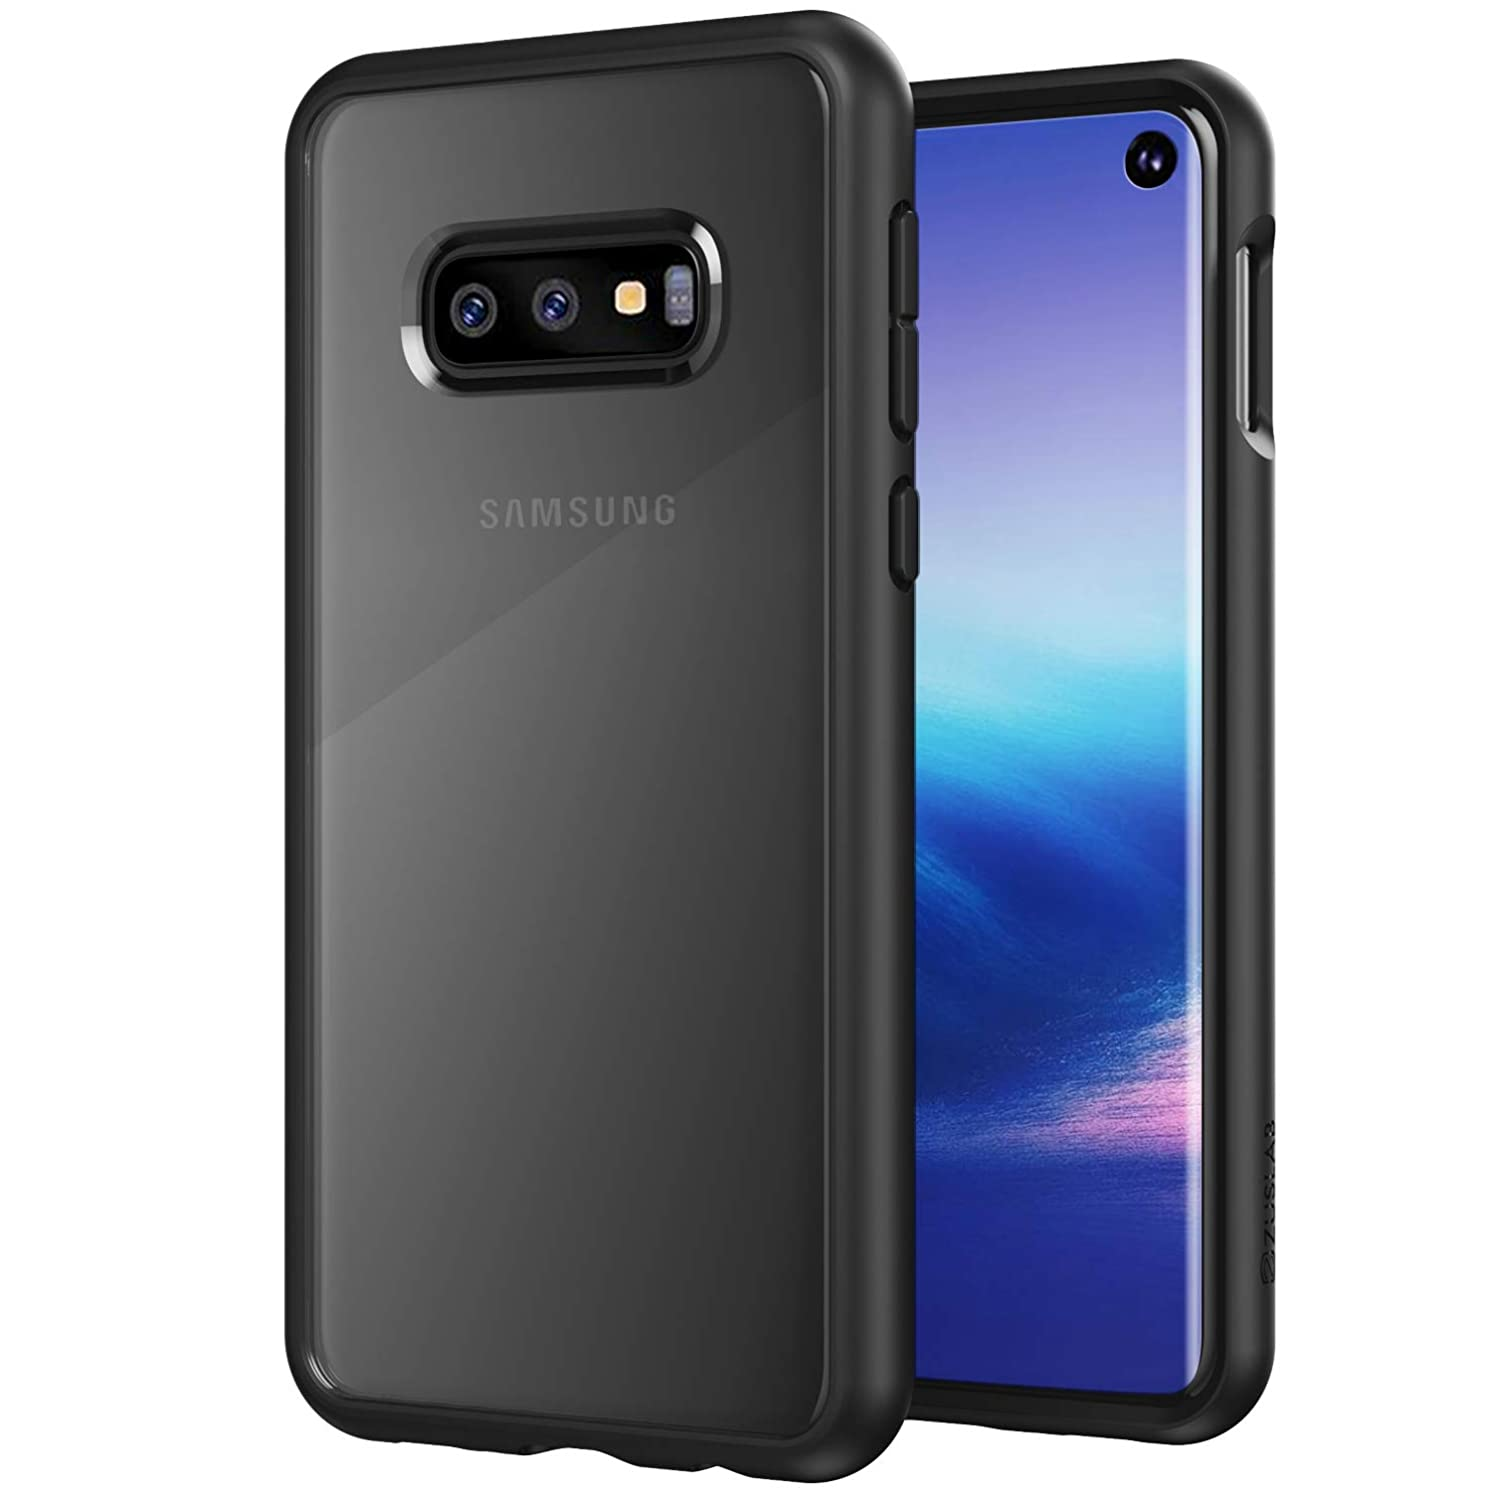 ZUSLAB Tough Fusion Designed for Samsung Galaxy S10e Case Clear with Transparent Back Cover - Matte Black